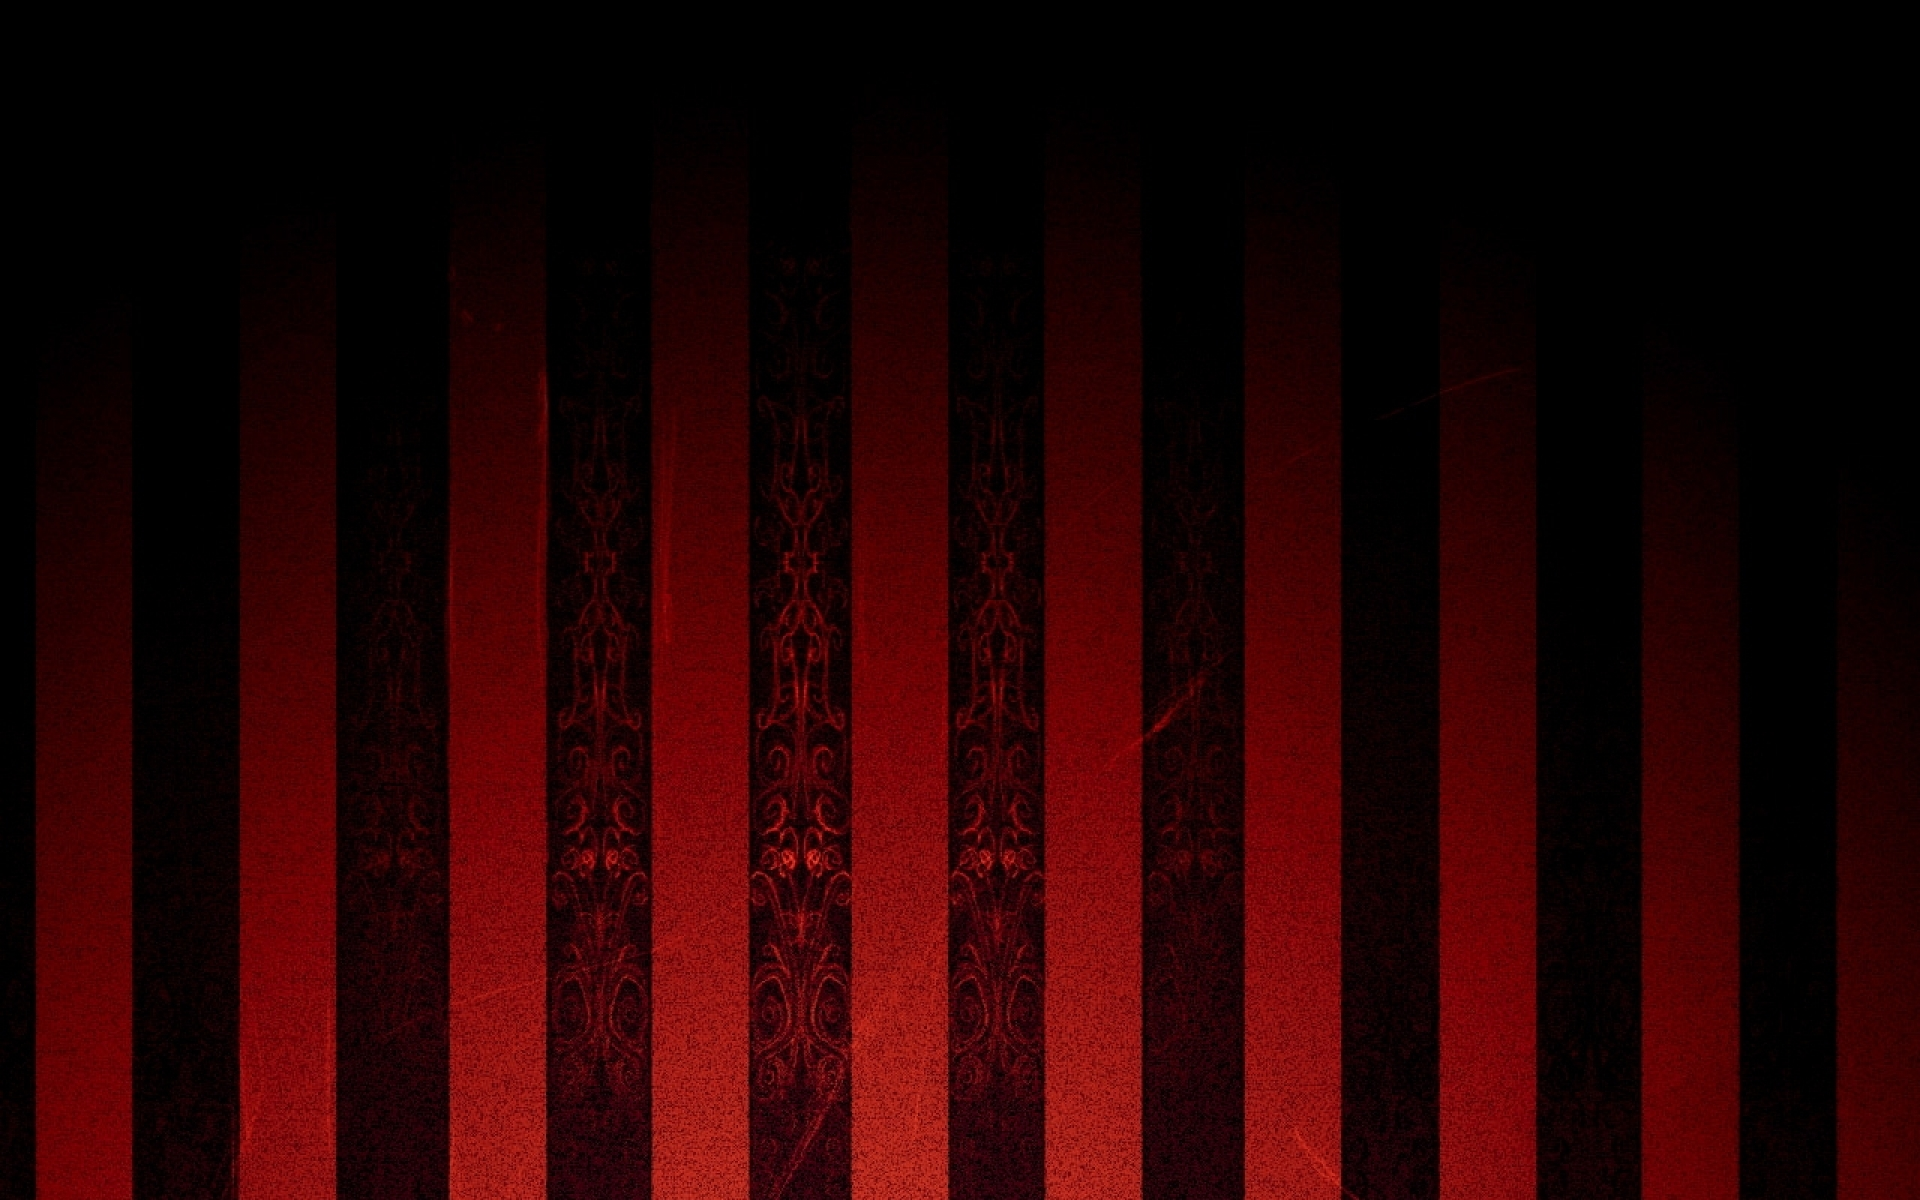 Black Red hd wallpaper for desktop HD Wallpaper 1920x1200